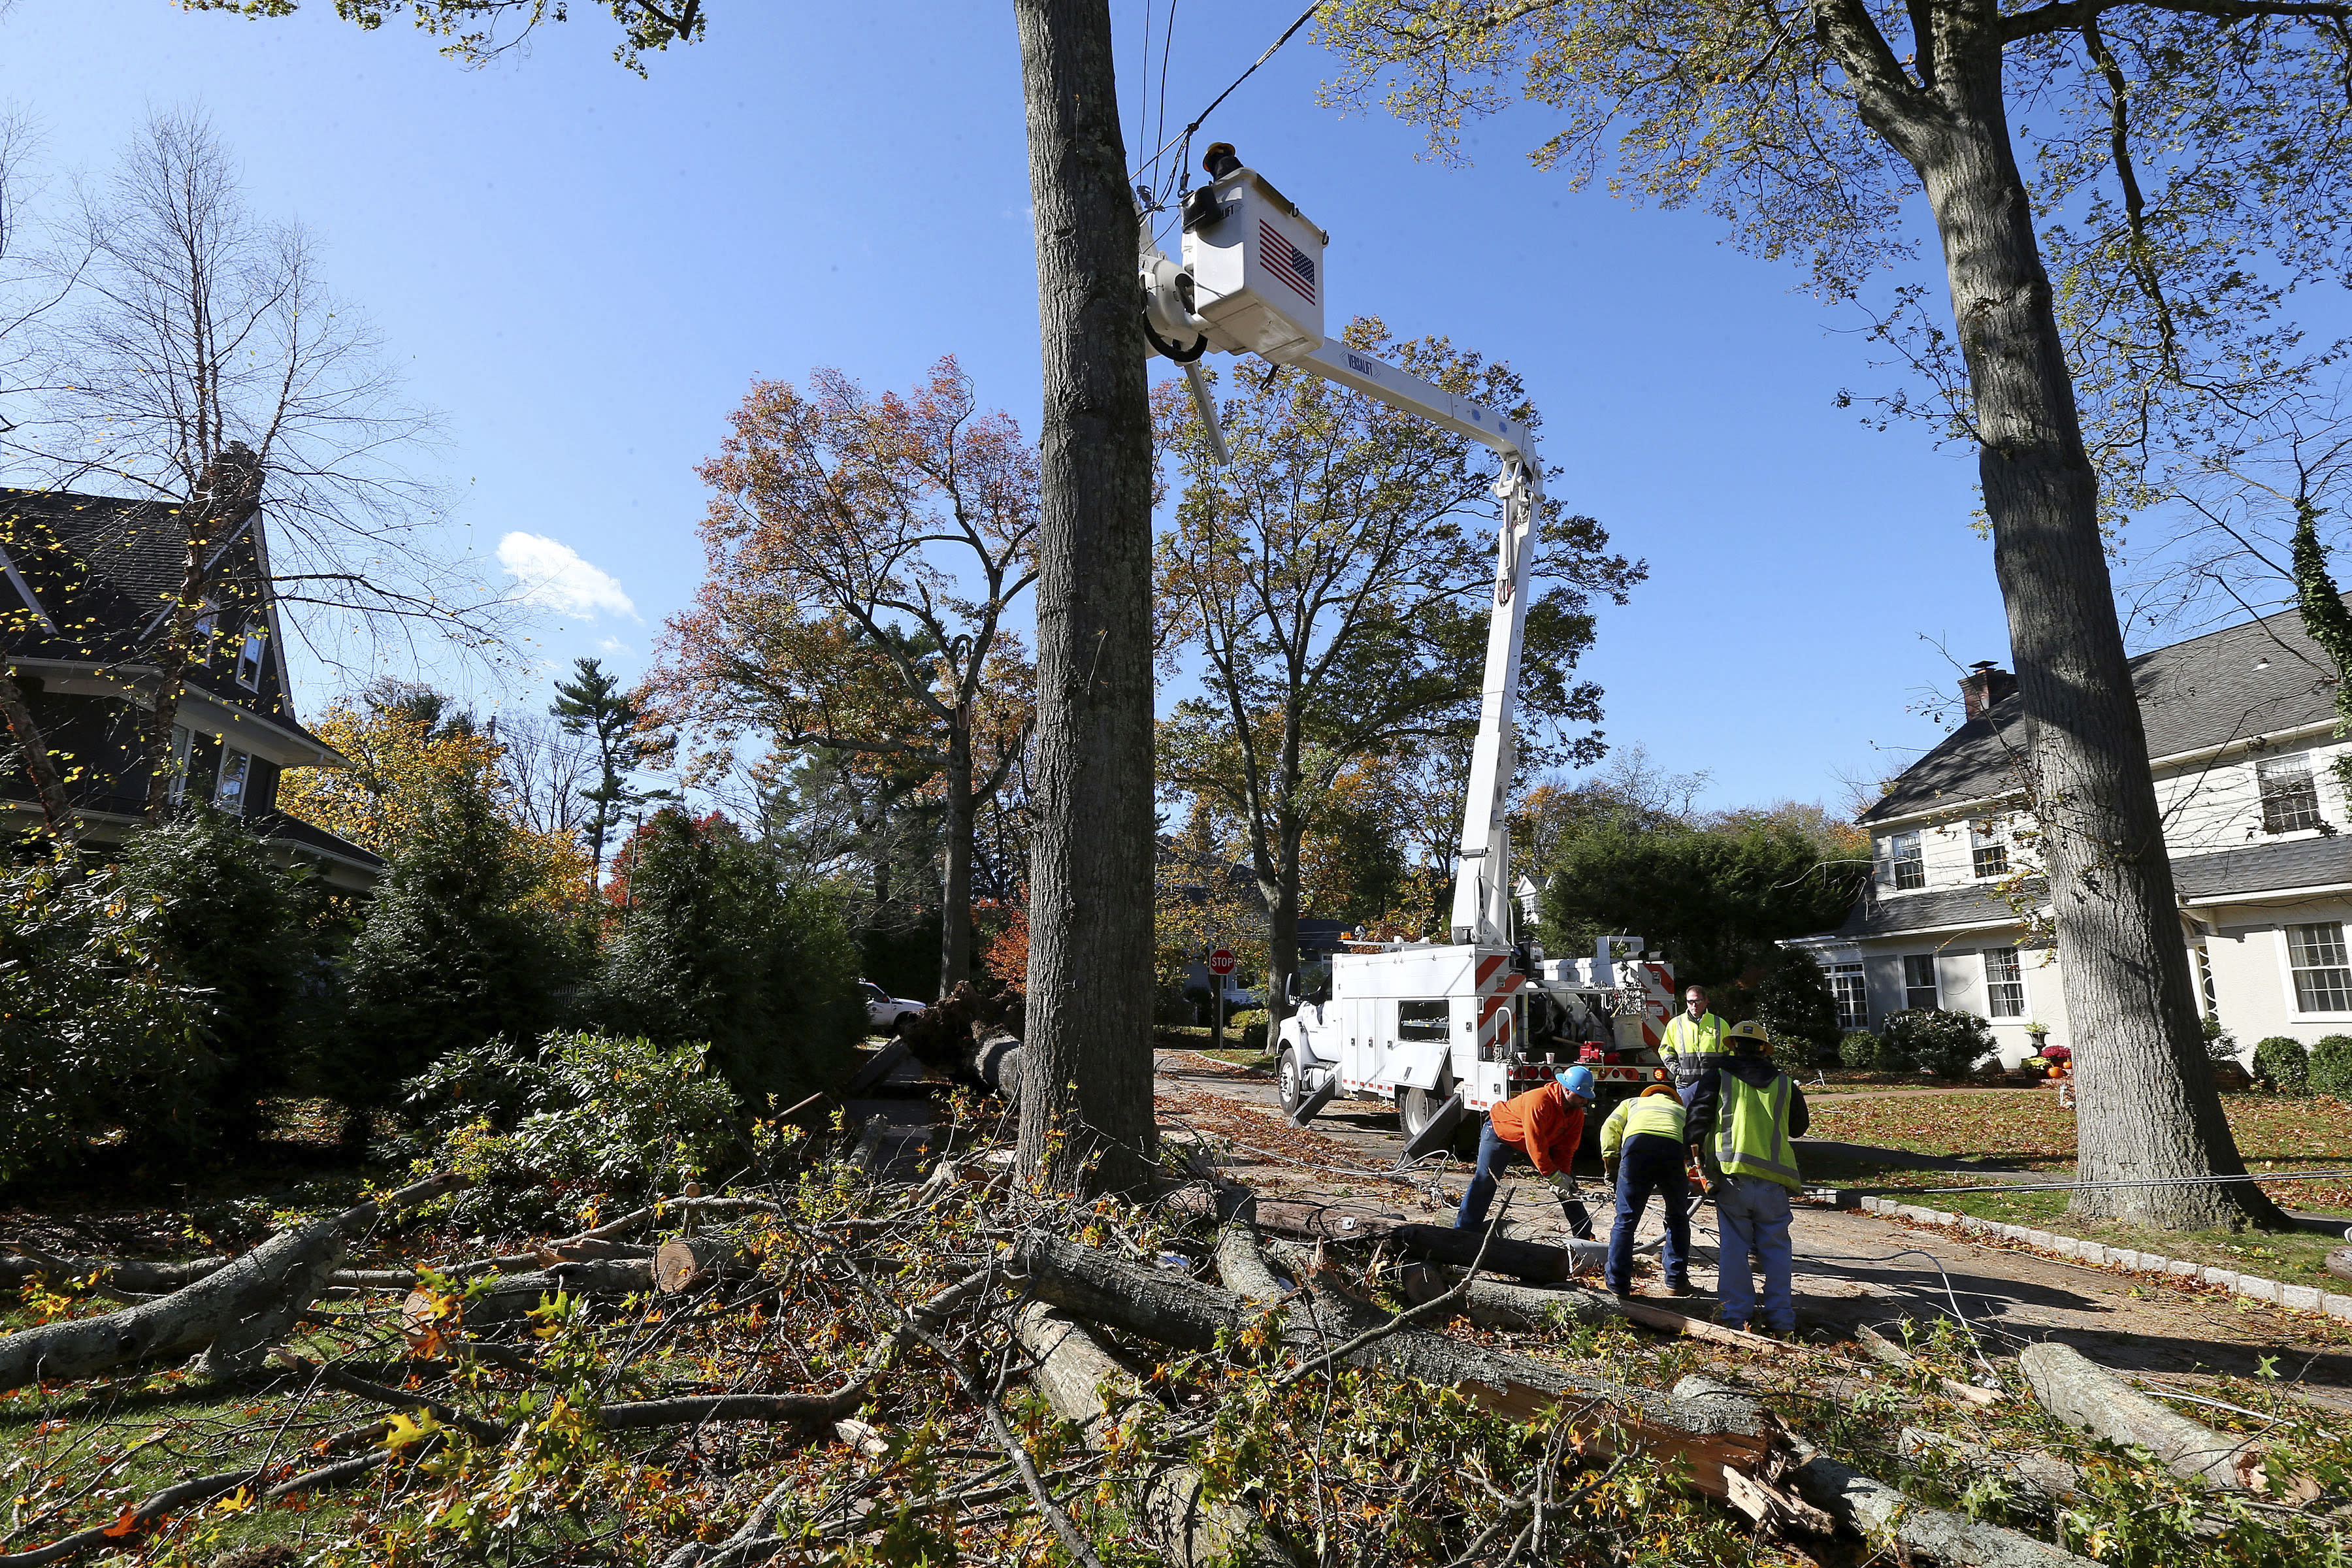 Crews from Madison Electric and Butler Municipal Power and Light work on downed power lines on Green Hill Road on Friday, Nov. 1, 2019, in Madison, N.J. The borough was hit by high winds on heavy rain late the night before. (AP Photo/Rich Schultz)